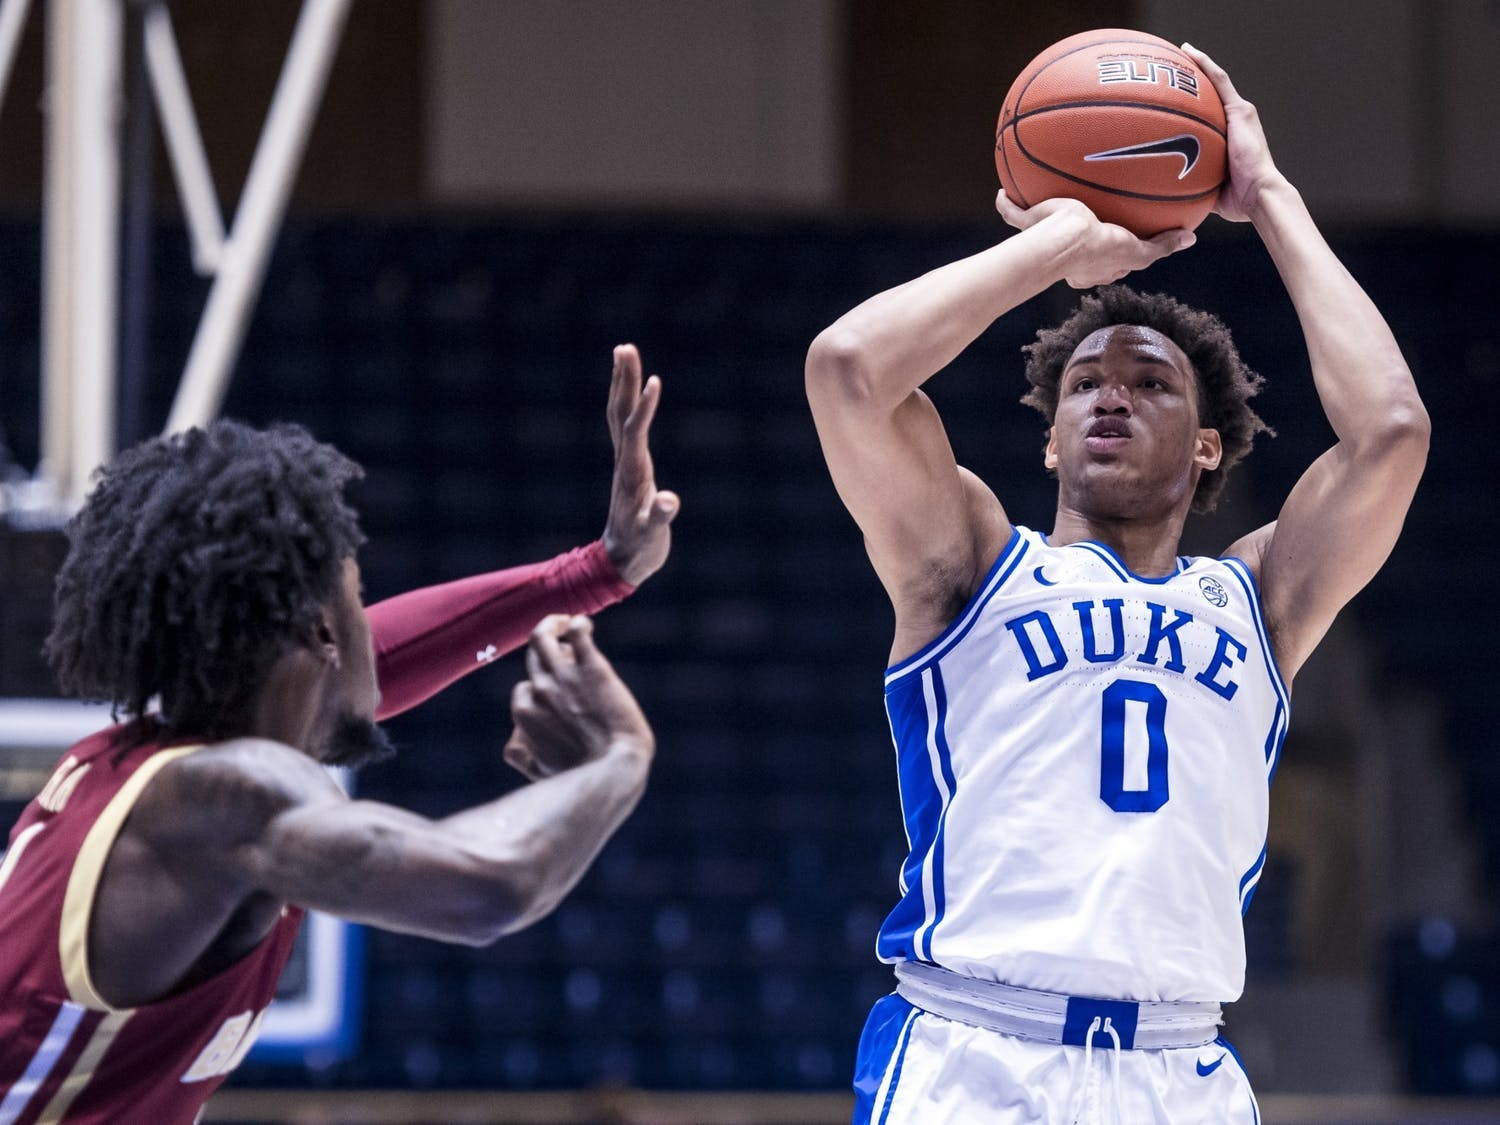 While Moore's 25-point performance was impressive, he has struggled offensively in the Blue Devils' other seven contests.